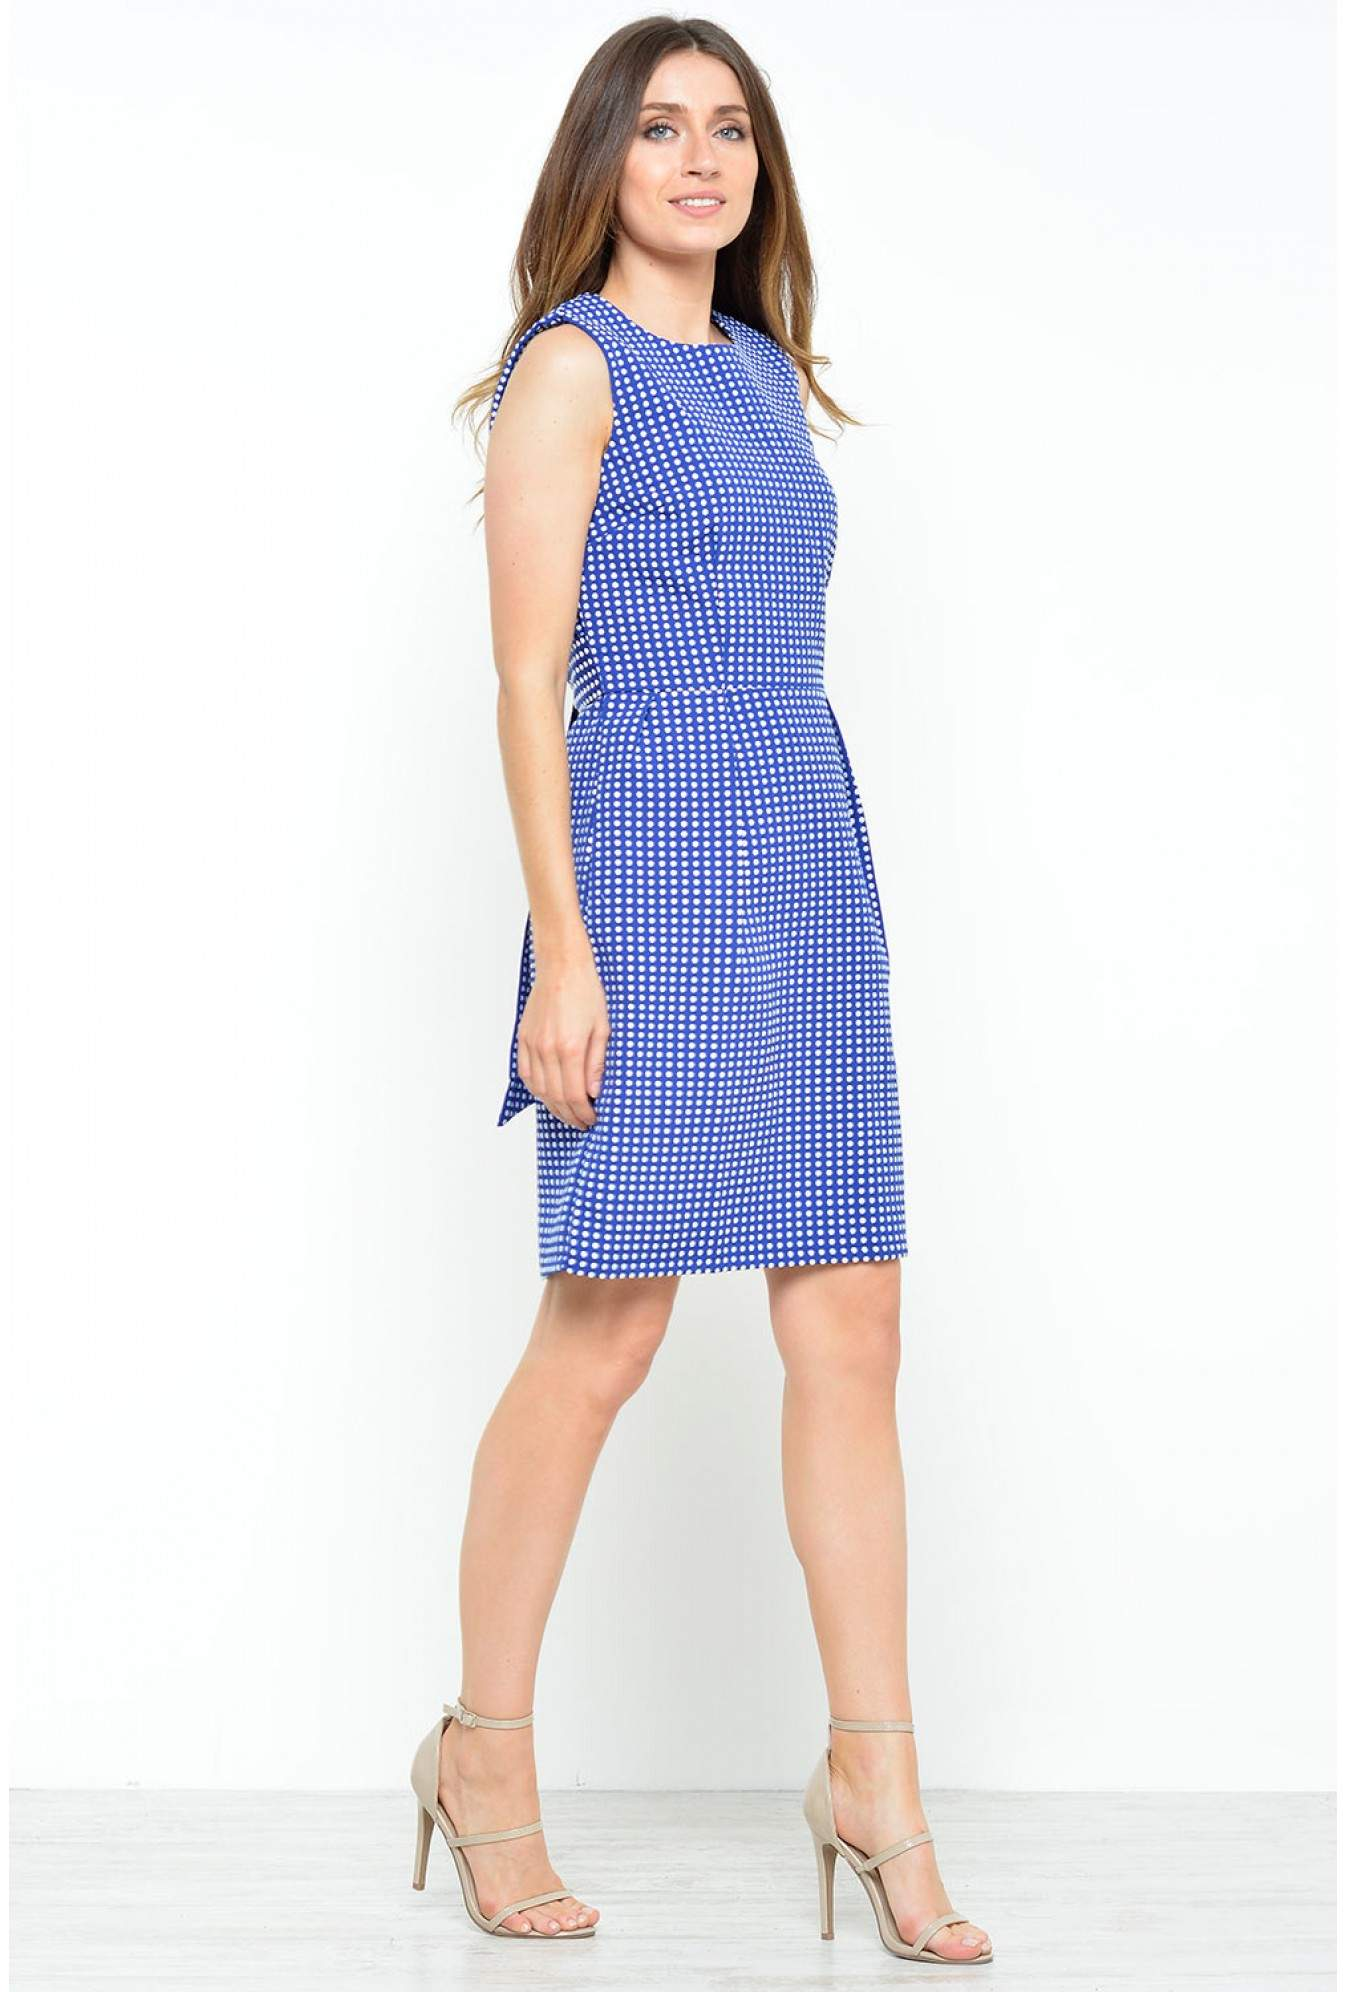 50b2942ab5977 Marc Angelo Matilda Polka Dot Dress in Navy | iCLOTHING